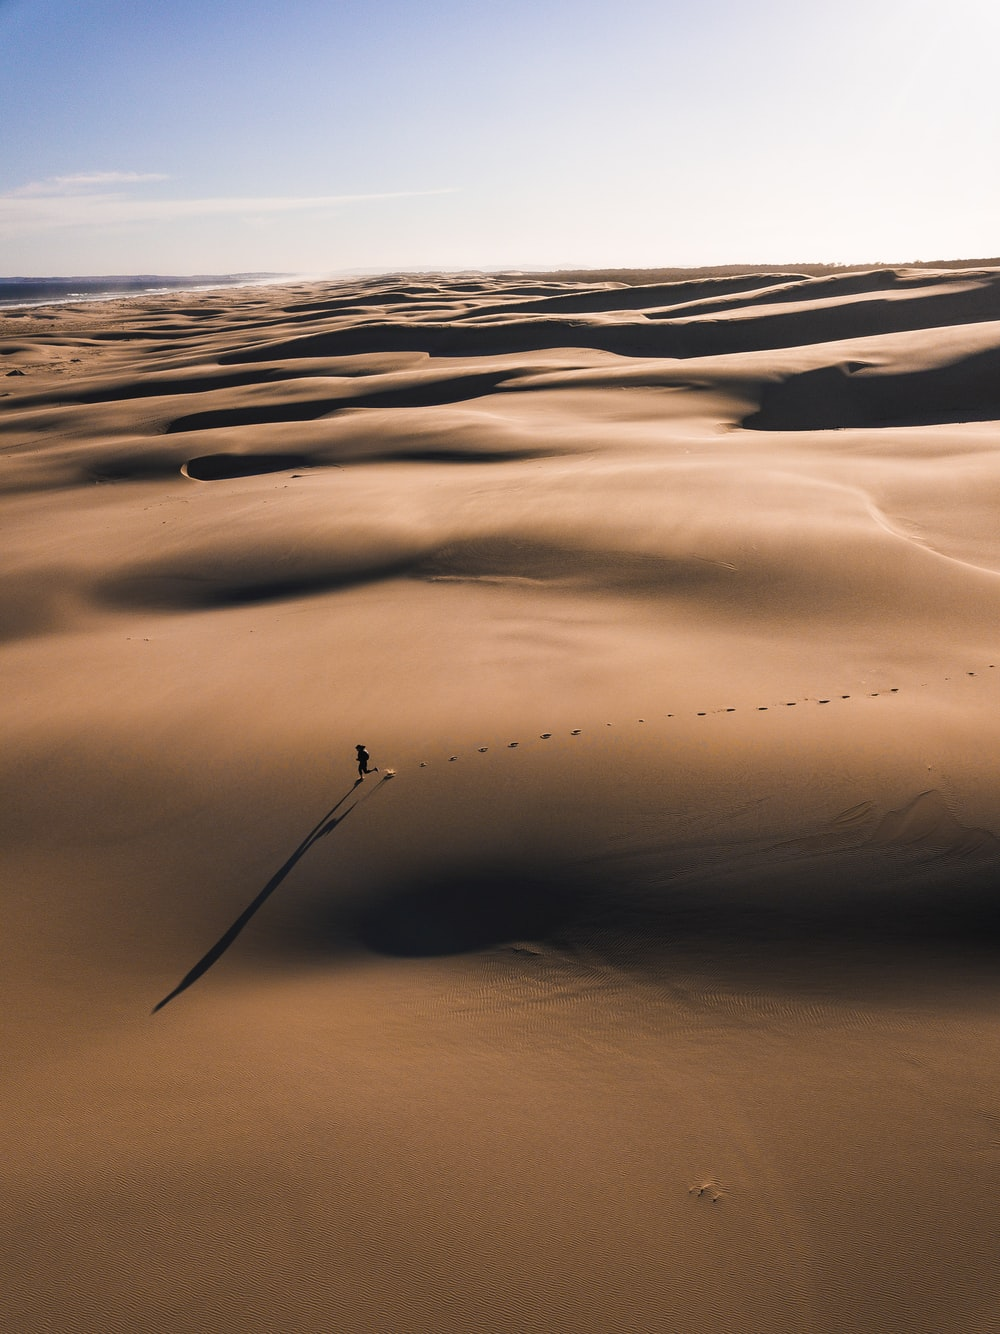 person walking on the desert photography